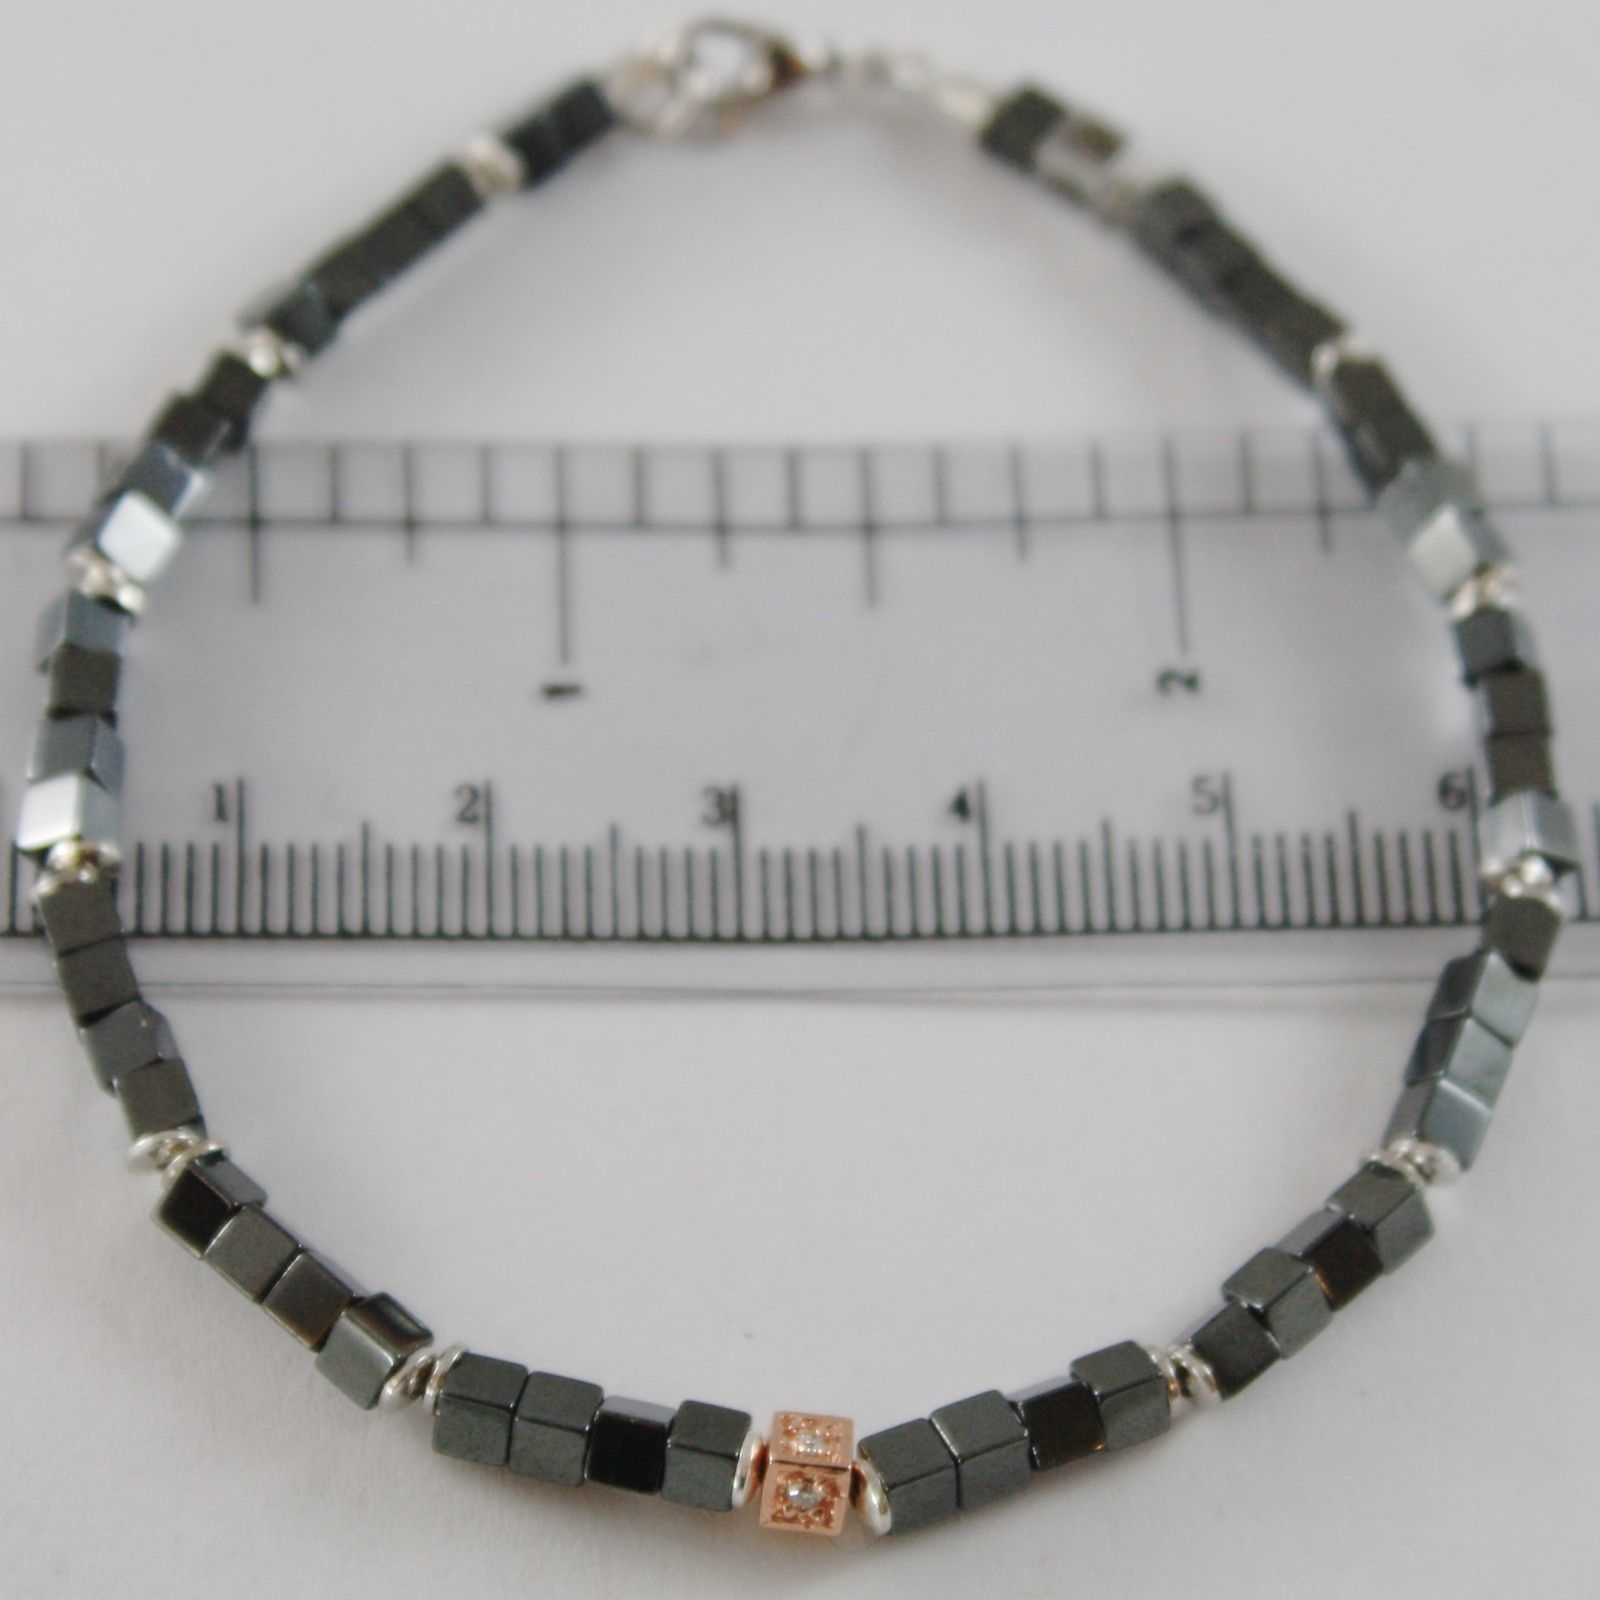 BRACELET GIADAN 925 SILVER HEMATITE GLOSSY AND DIAMONDS WHITE MADE IN ITALY